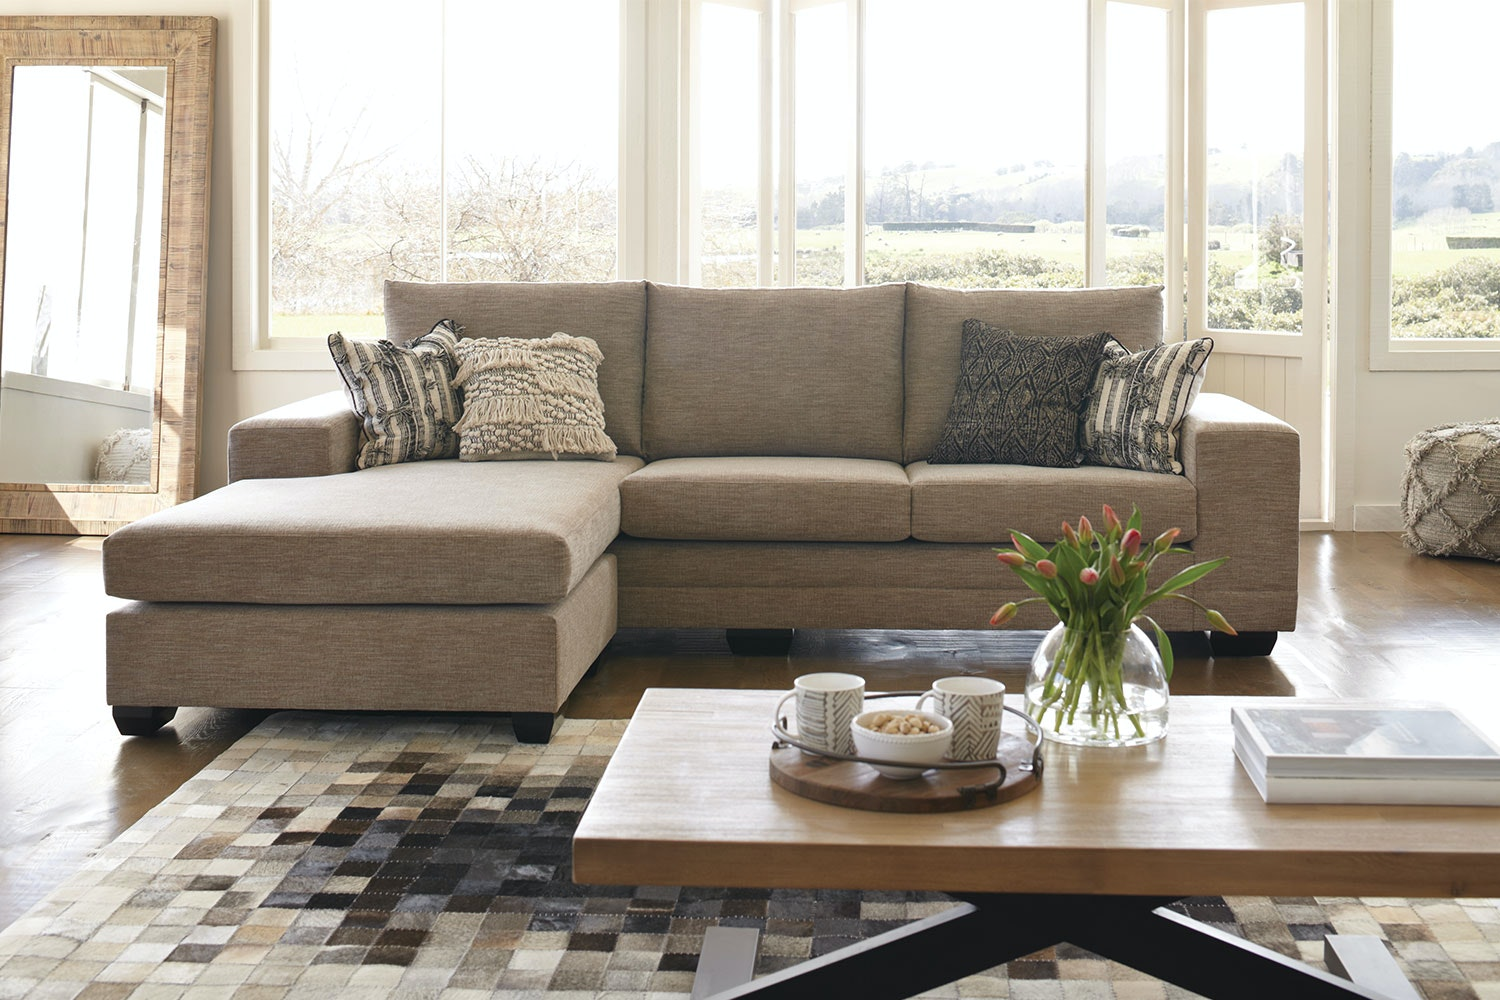 Martini 4 Seater Fabric Lounge Suite with Chaise